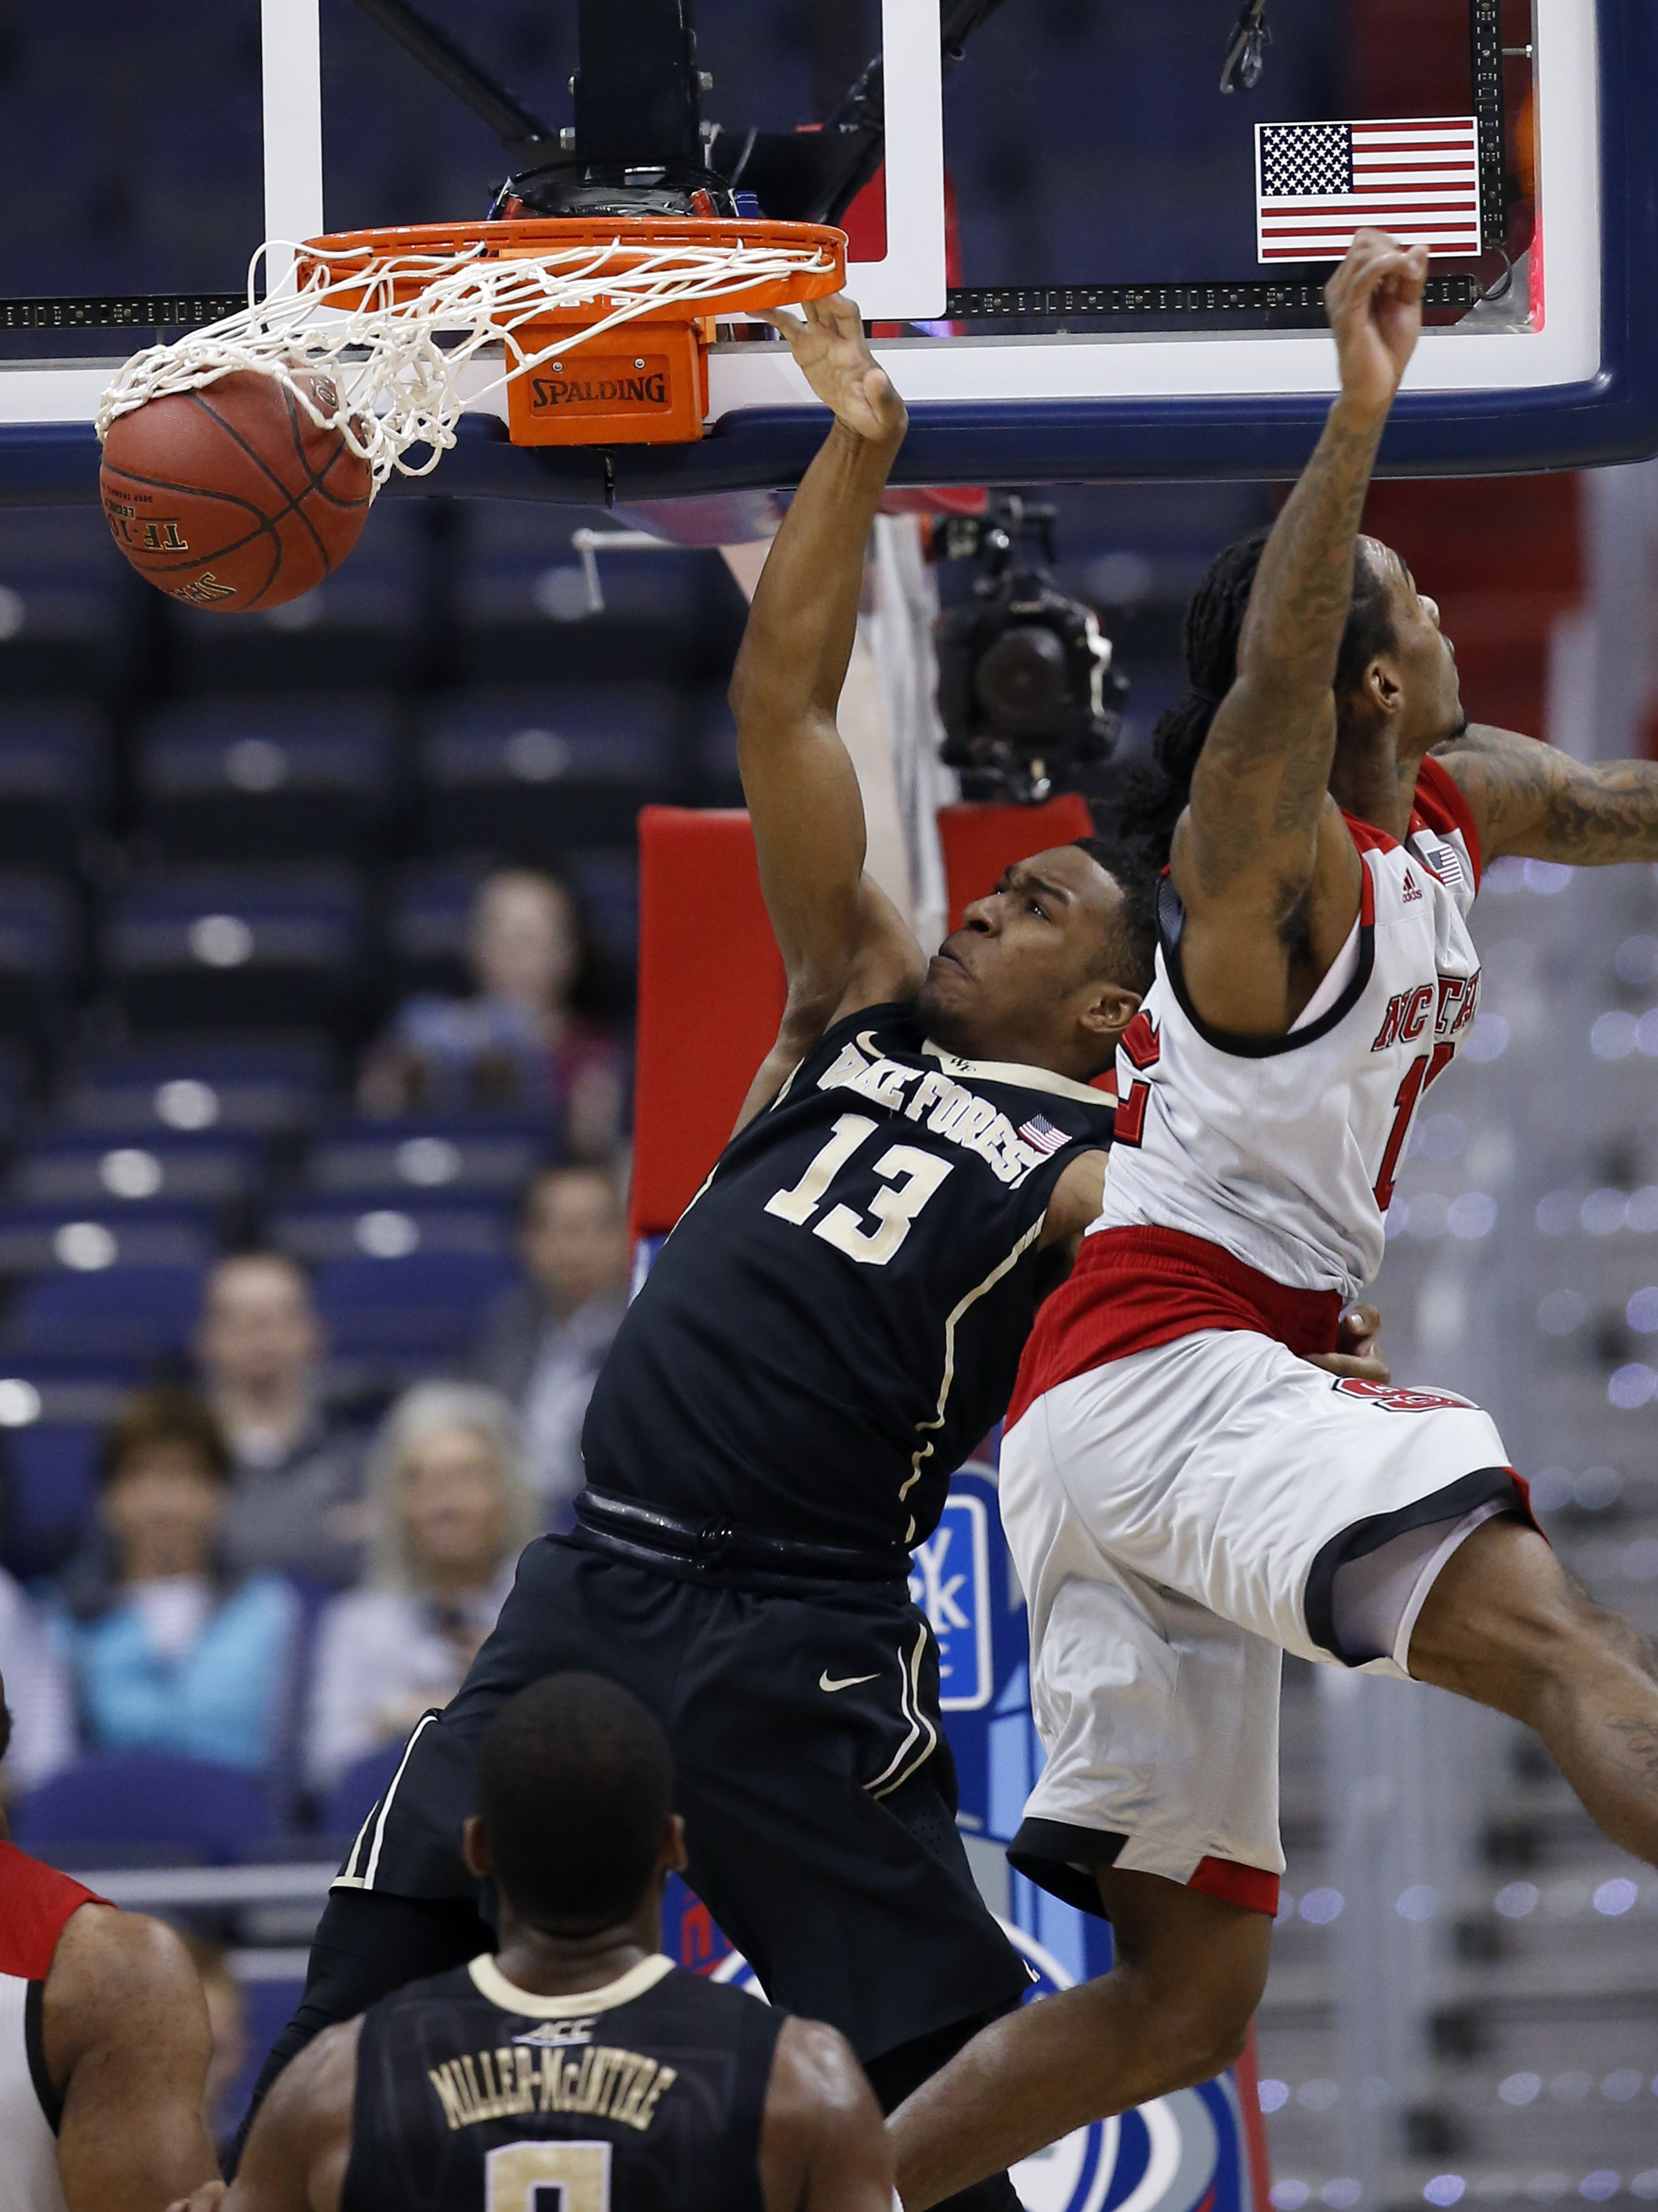 Wake Forest guard Bryant Crawford (13) dunks the ball past North Carolina State guard Anthony Barber (12) during the first half of an NCAA college basketball game in the Atlantic Coast Conference tournament, Tuesday, March 8, 2016, in Washington. (AP Phot